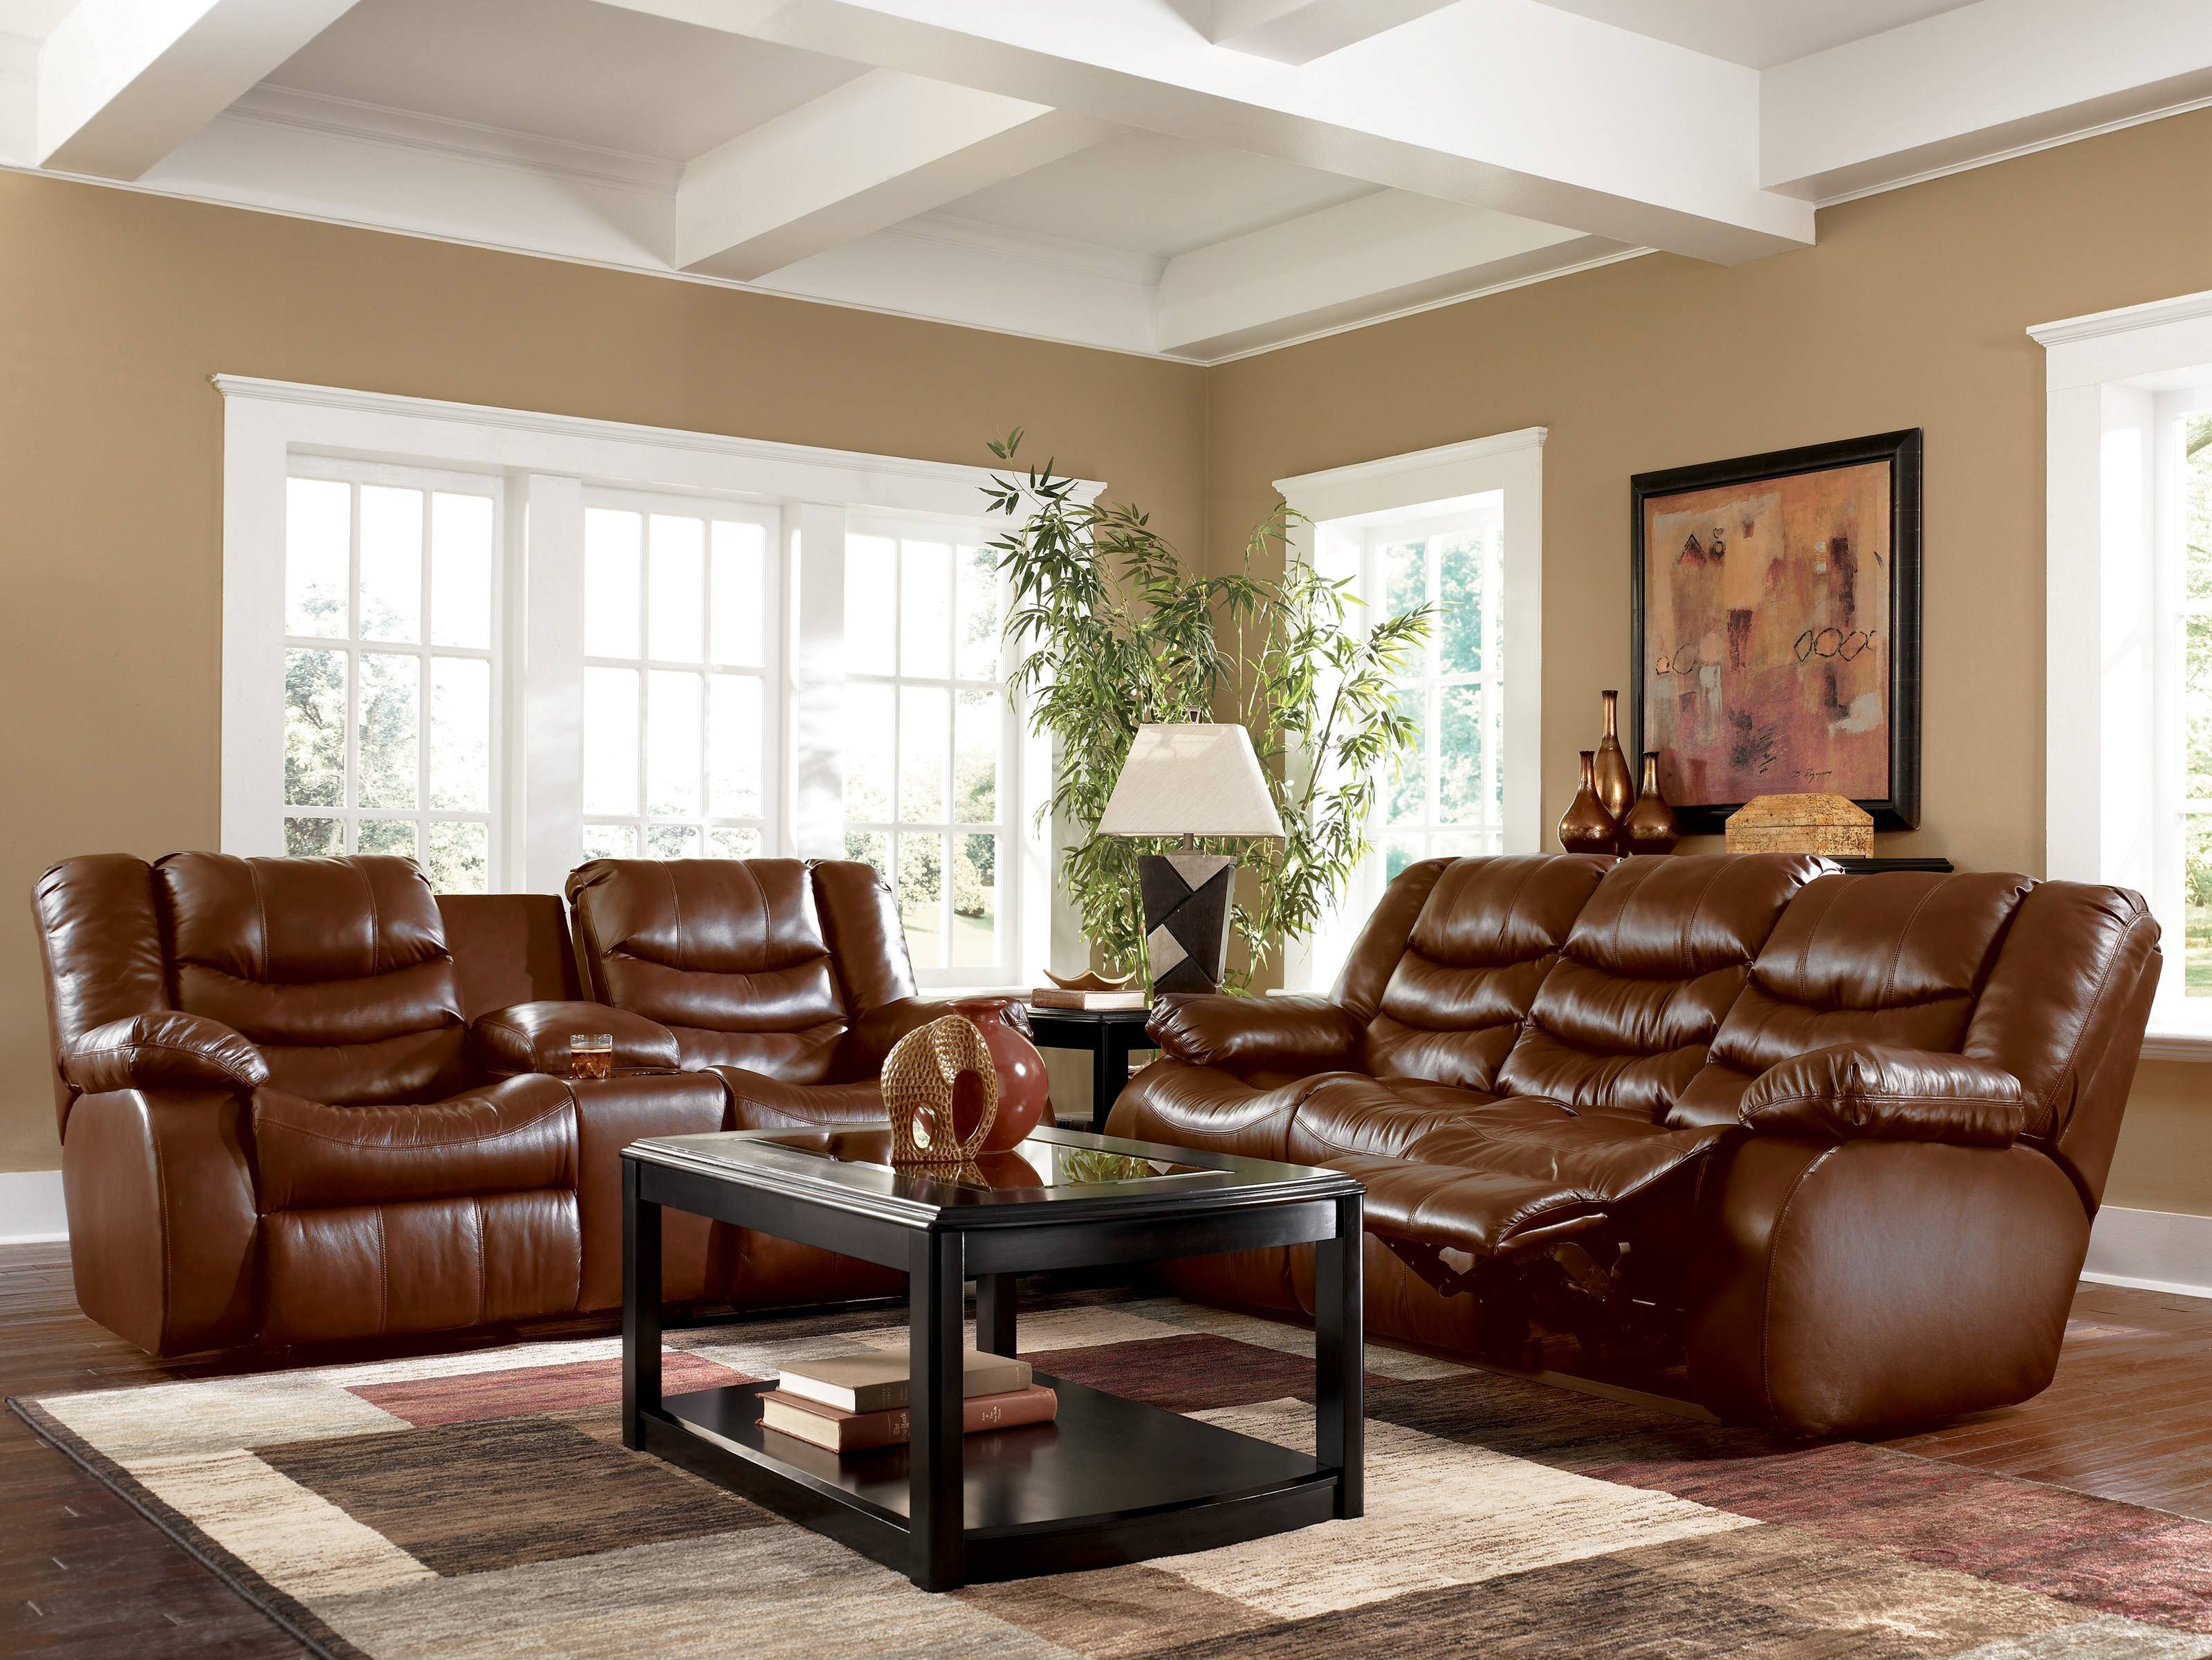 Decorating Ideas For Living Room With Brown Leather Couch throughout Living Room With Brown Sofas (Image 7 of 15)